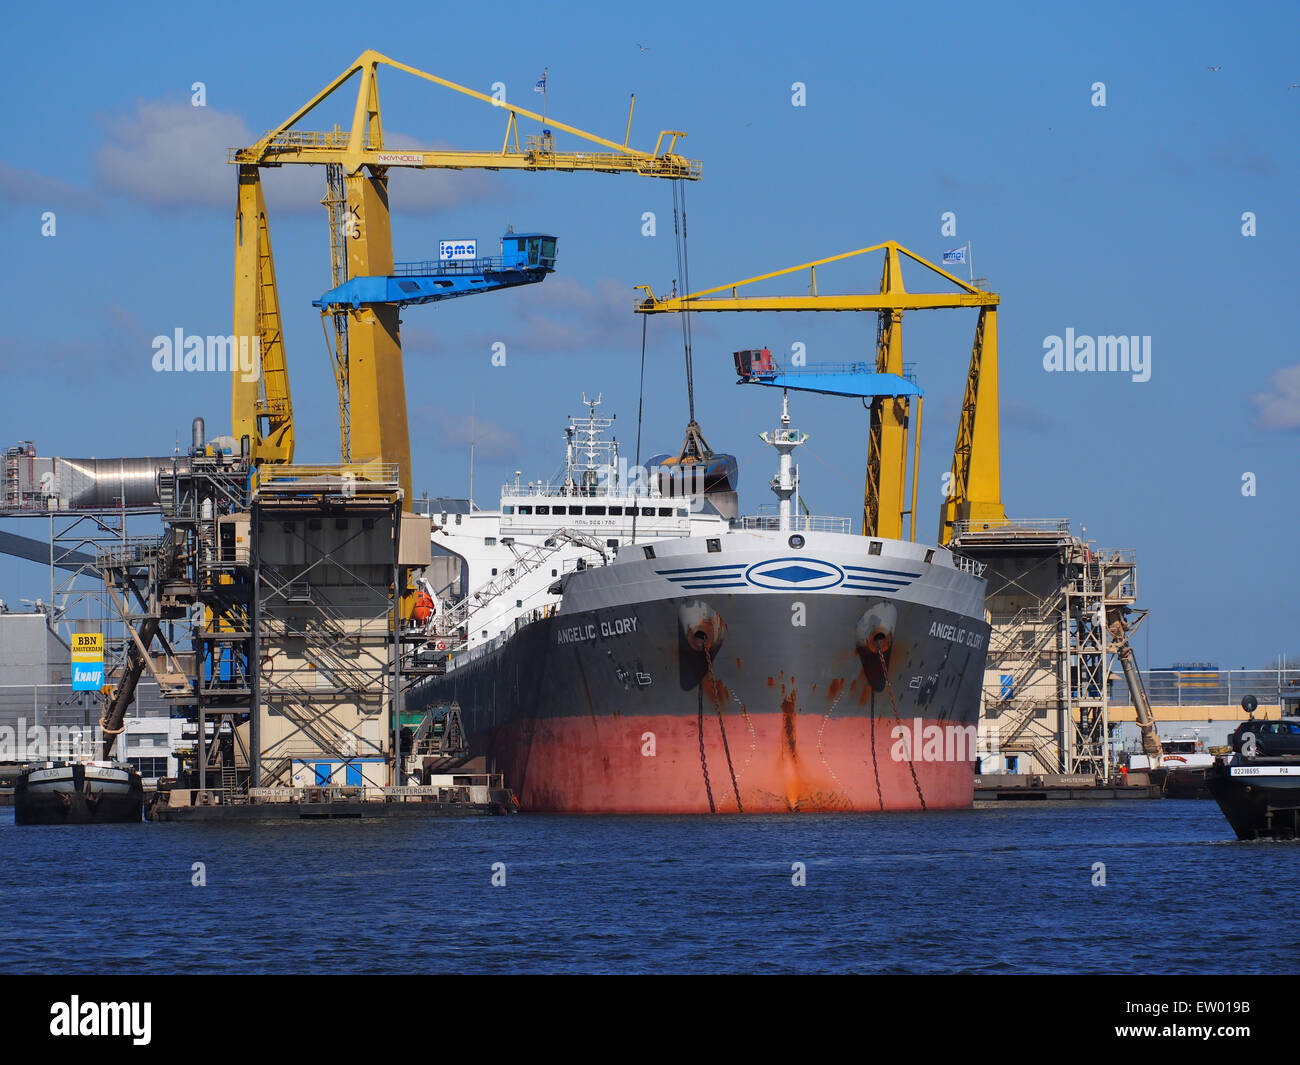 Angelic Glory - IMO 9261798 - Callsign SVCT, Vlothaven, Port of Amsterdam, pic3 - Stock Image